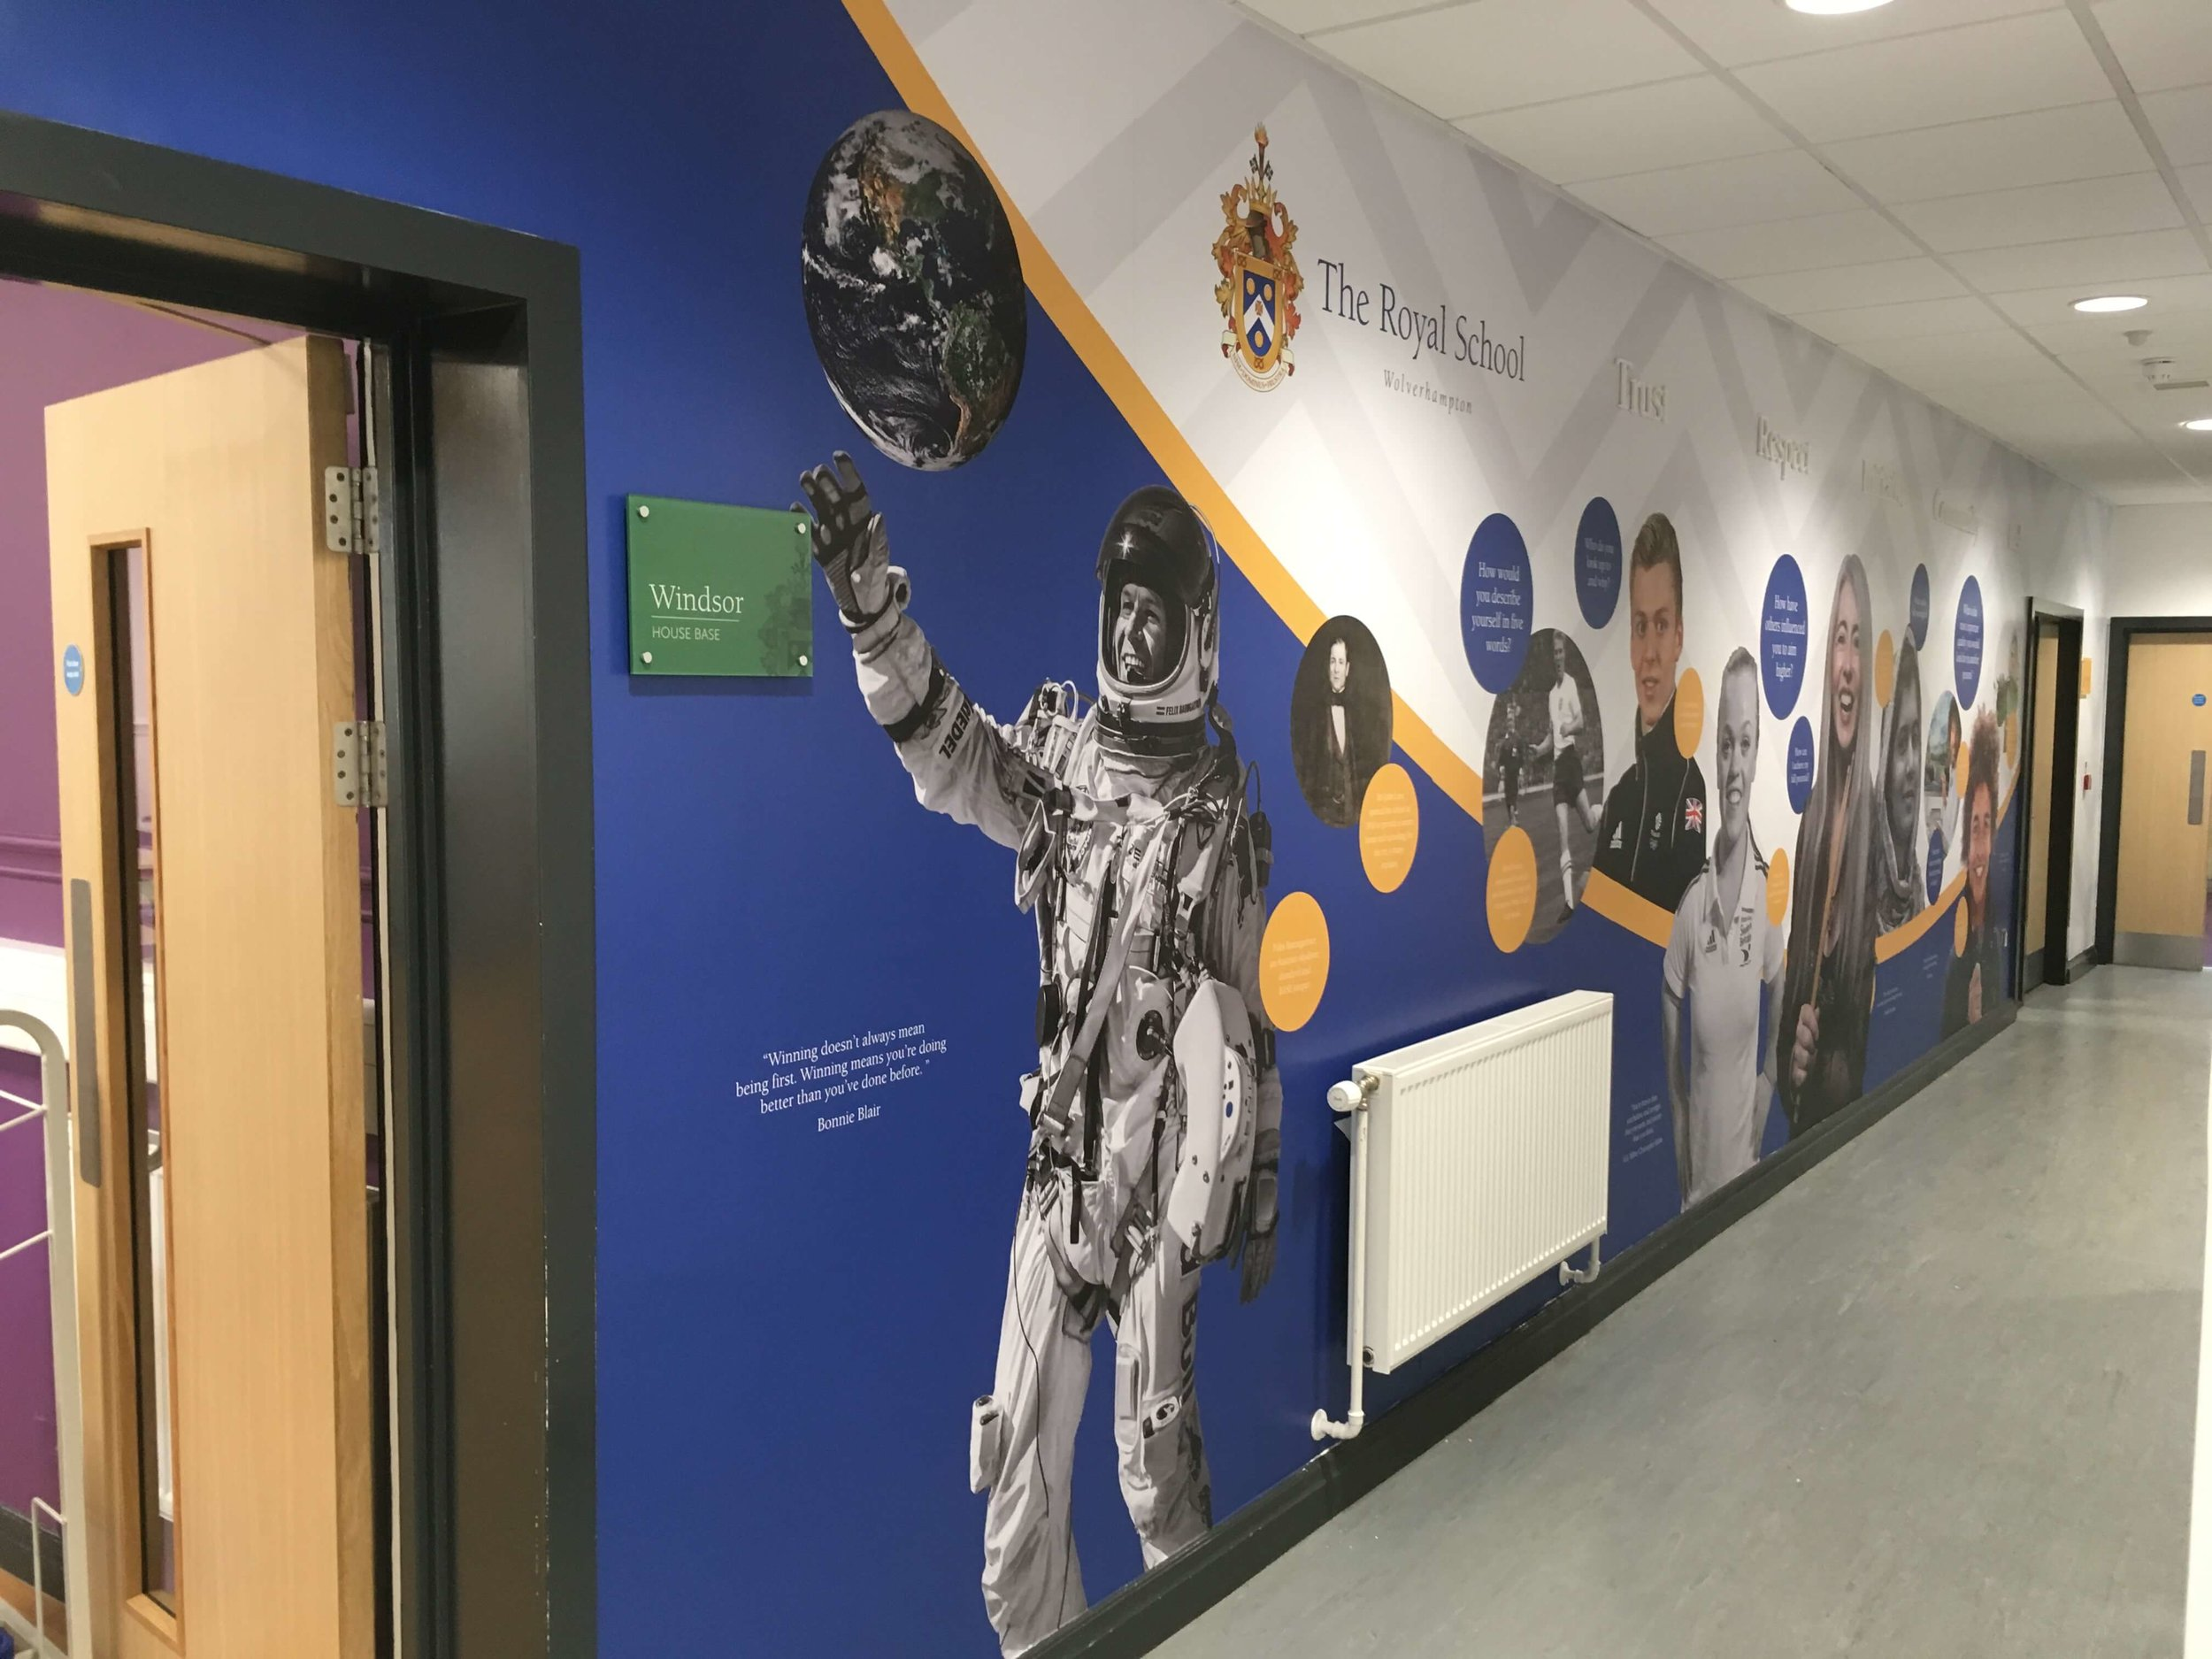 Royal School brand and values wall graphic, school wall graphic design